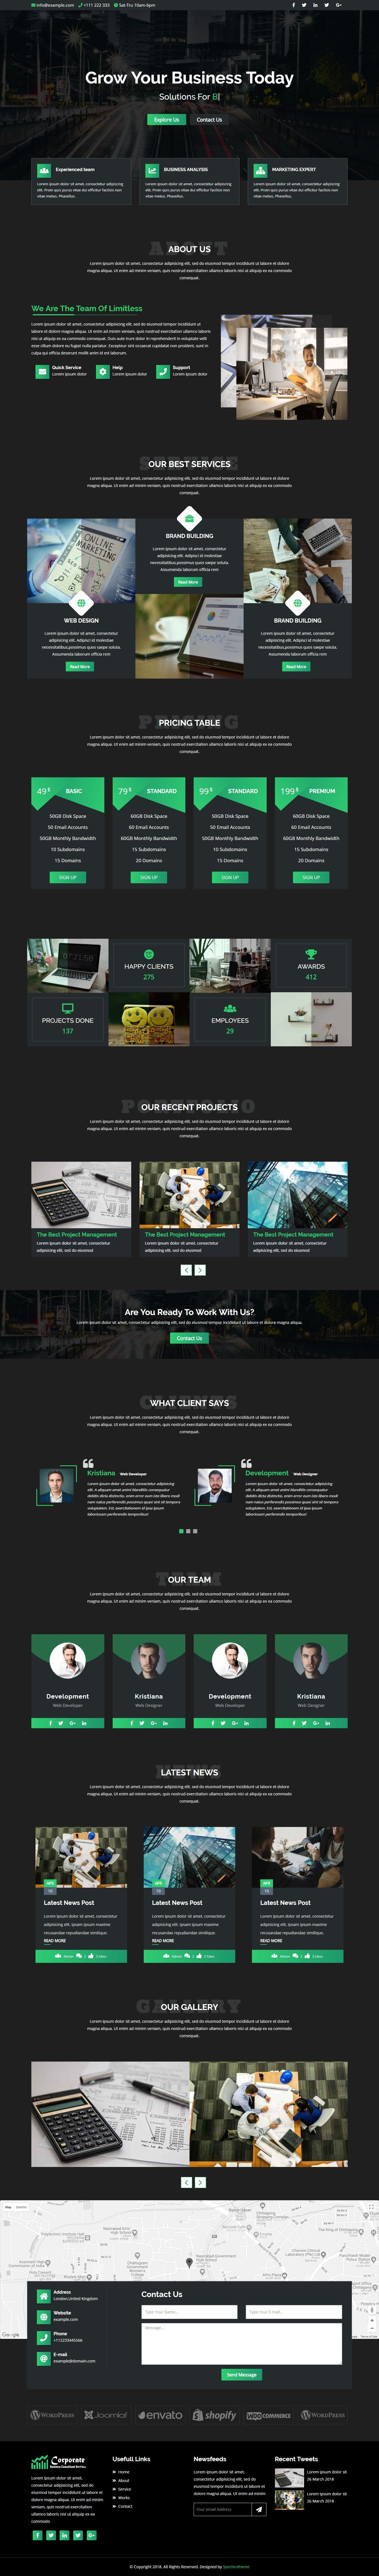 Corporate - Business and Portfolio Template Screenshot 1